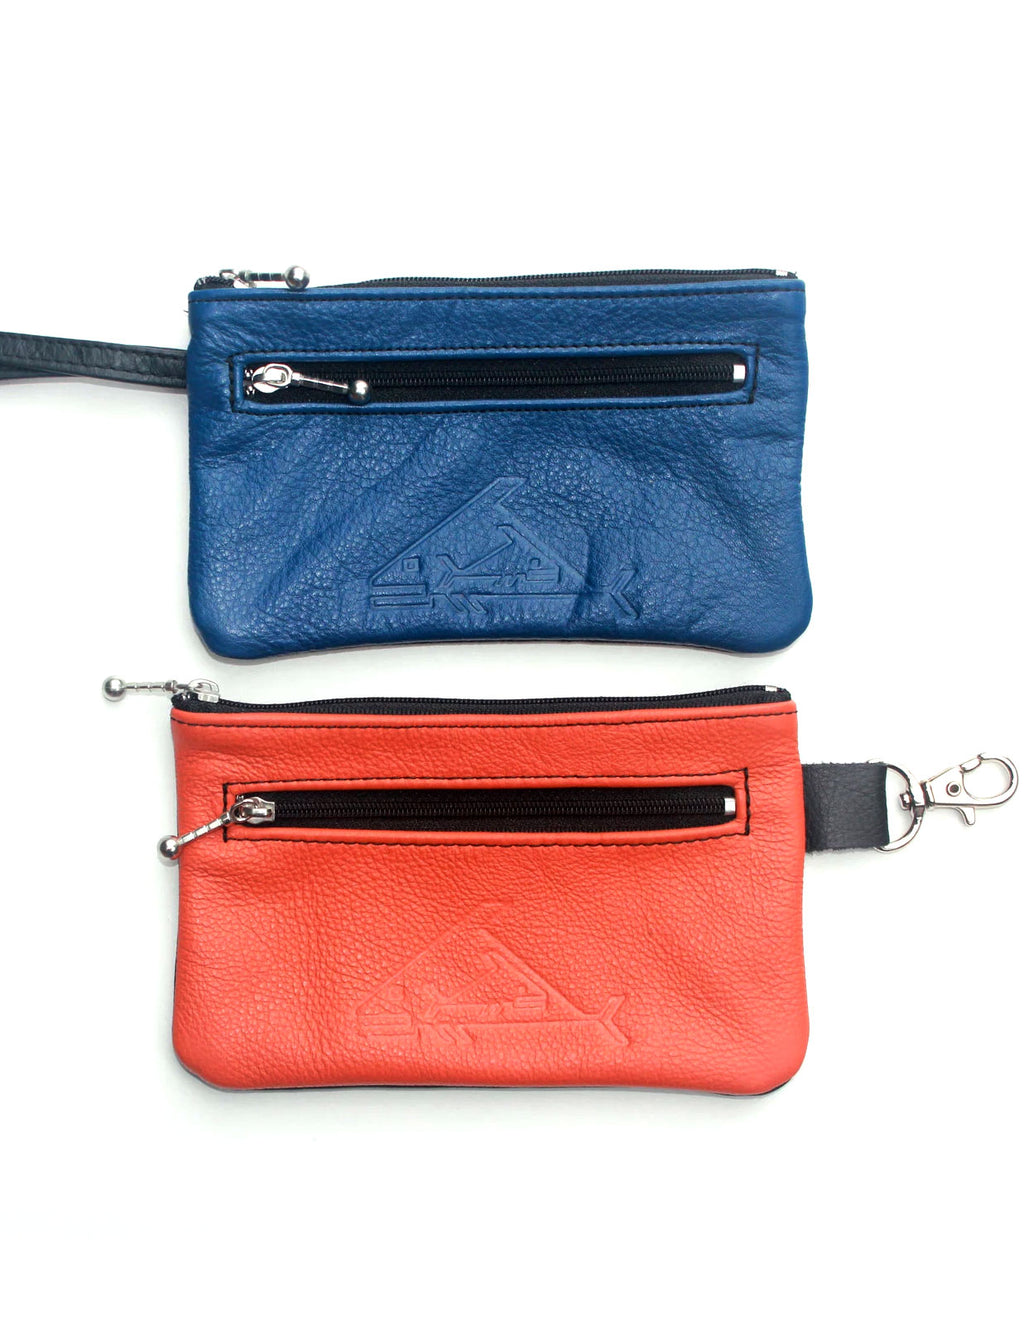 Wristlet or  Wallet Bag with Snap Hook - Indian Summer's designer leather purses